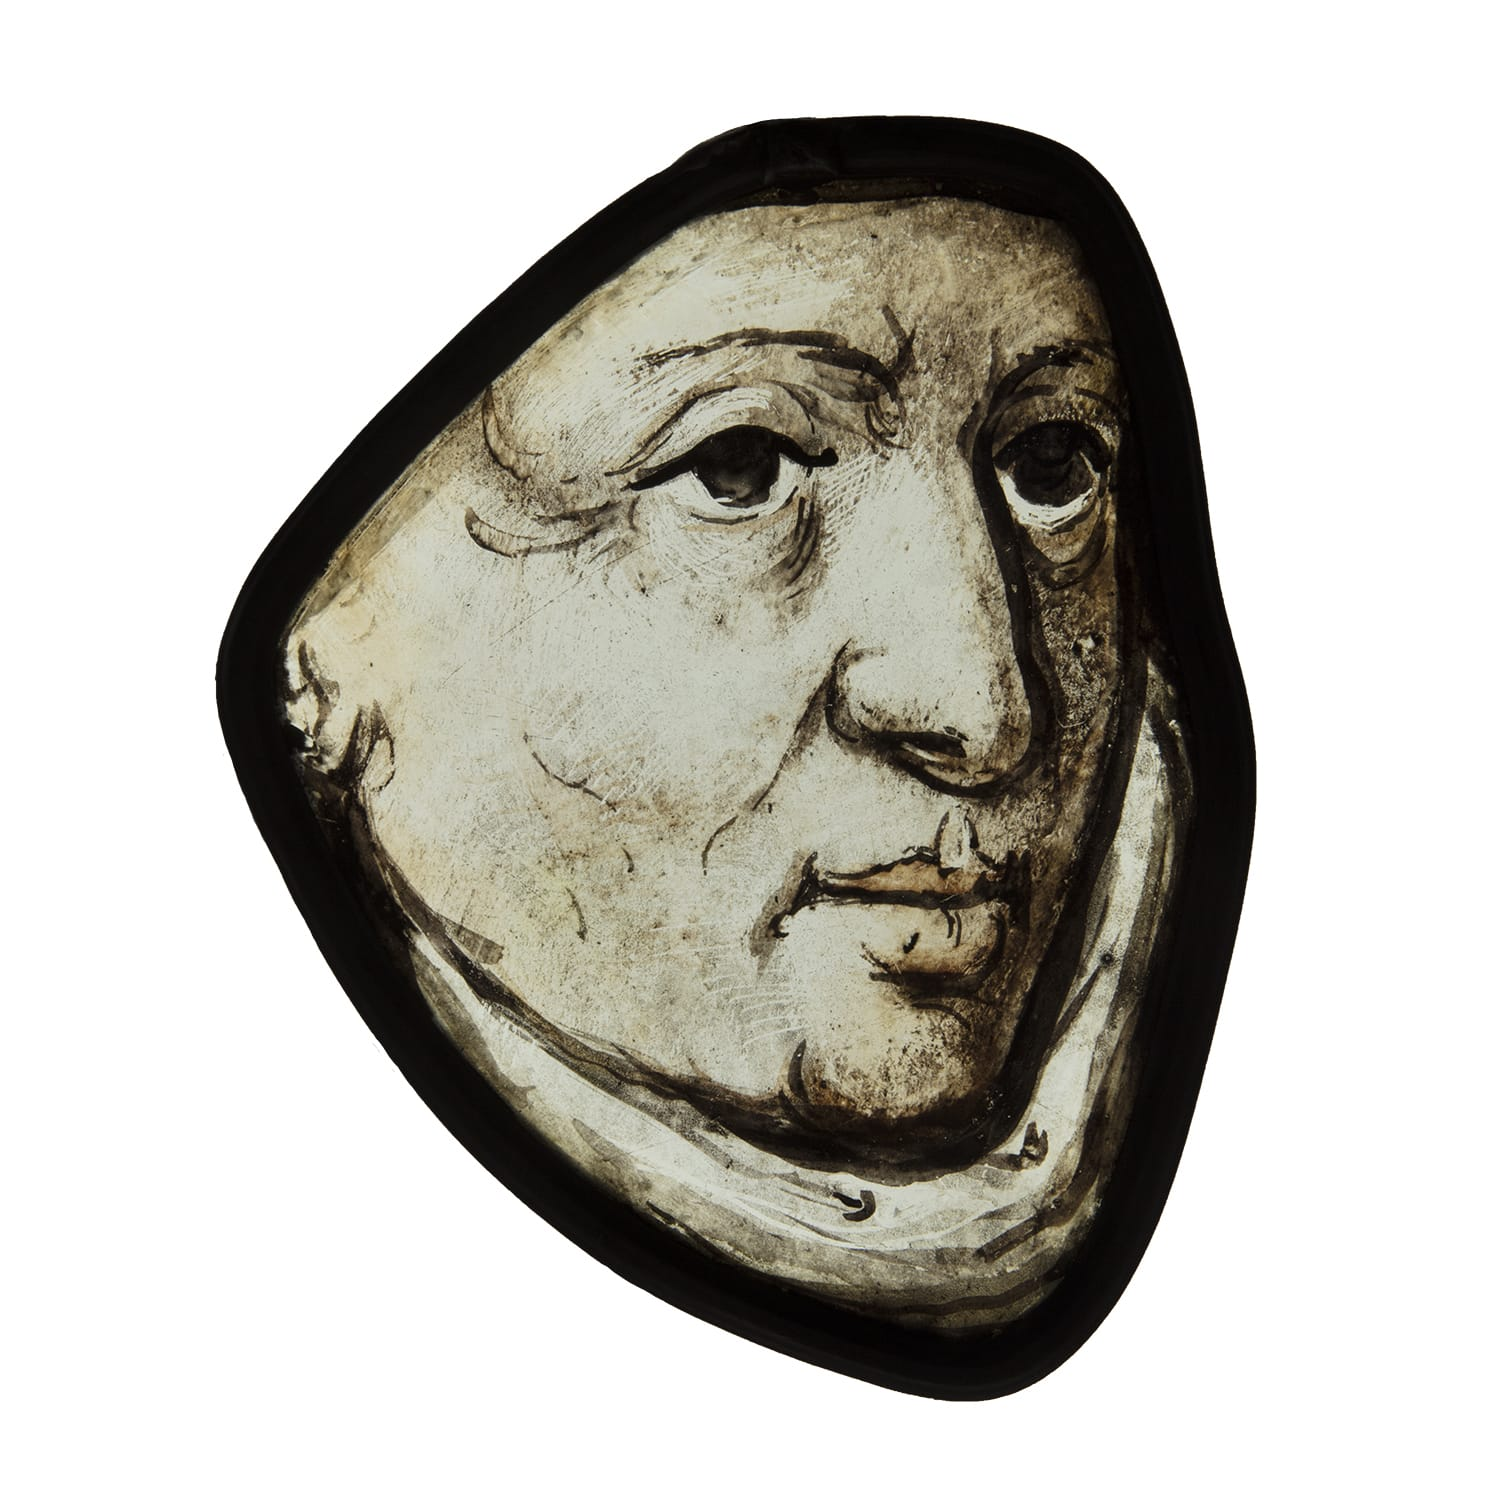 "<span class=""title""><em>The head of a bishop or bishop saint</em>, c. 1510 - 20</span>"